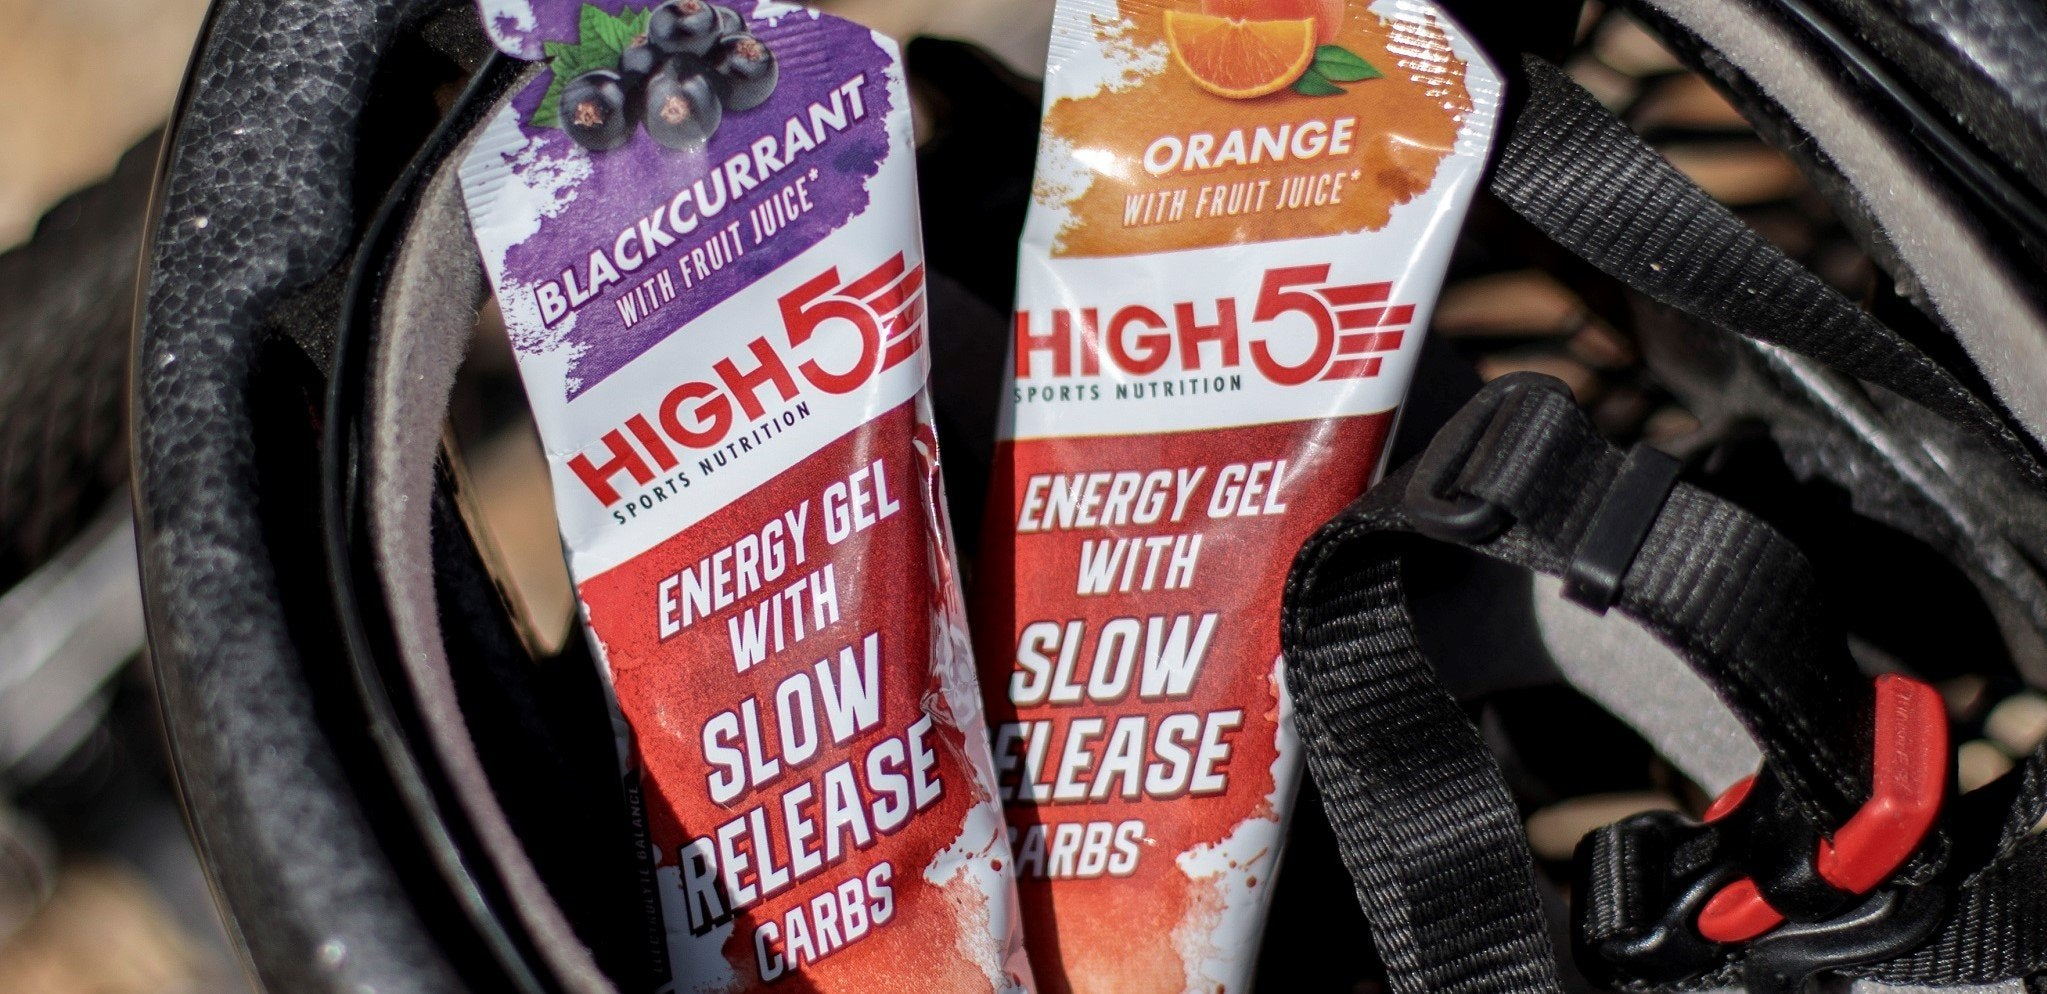 High5 Slow Release Carbs